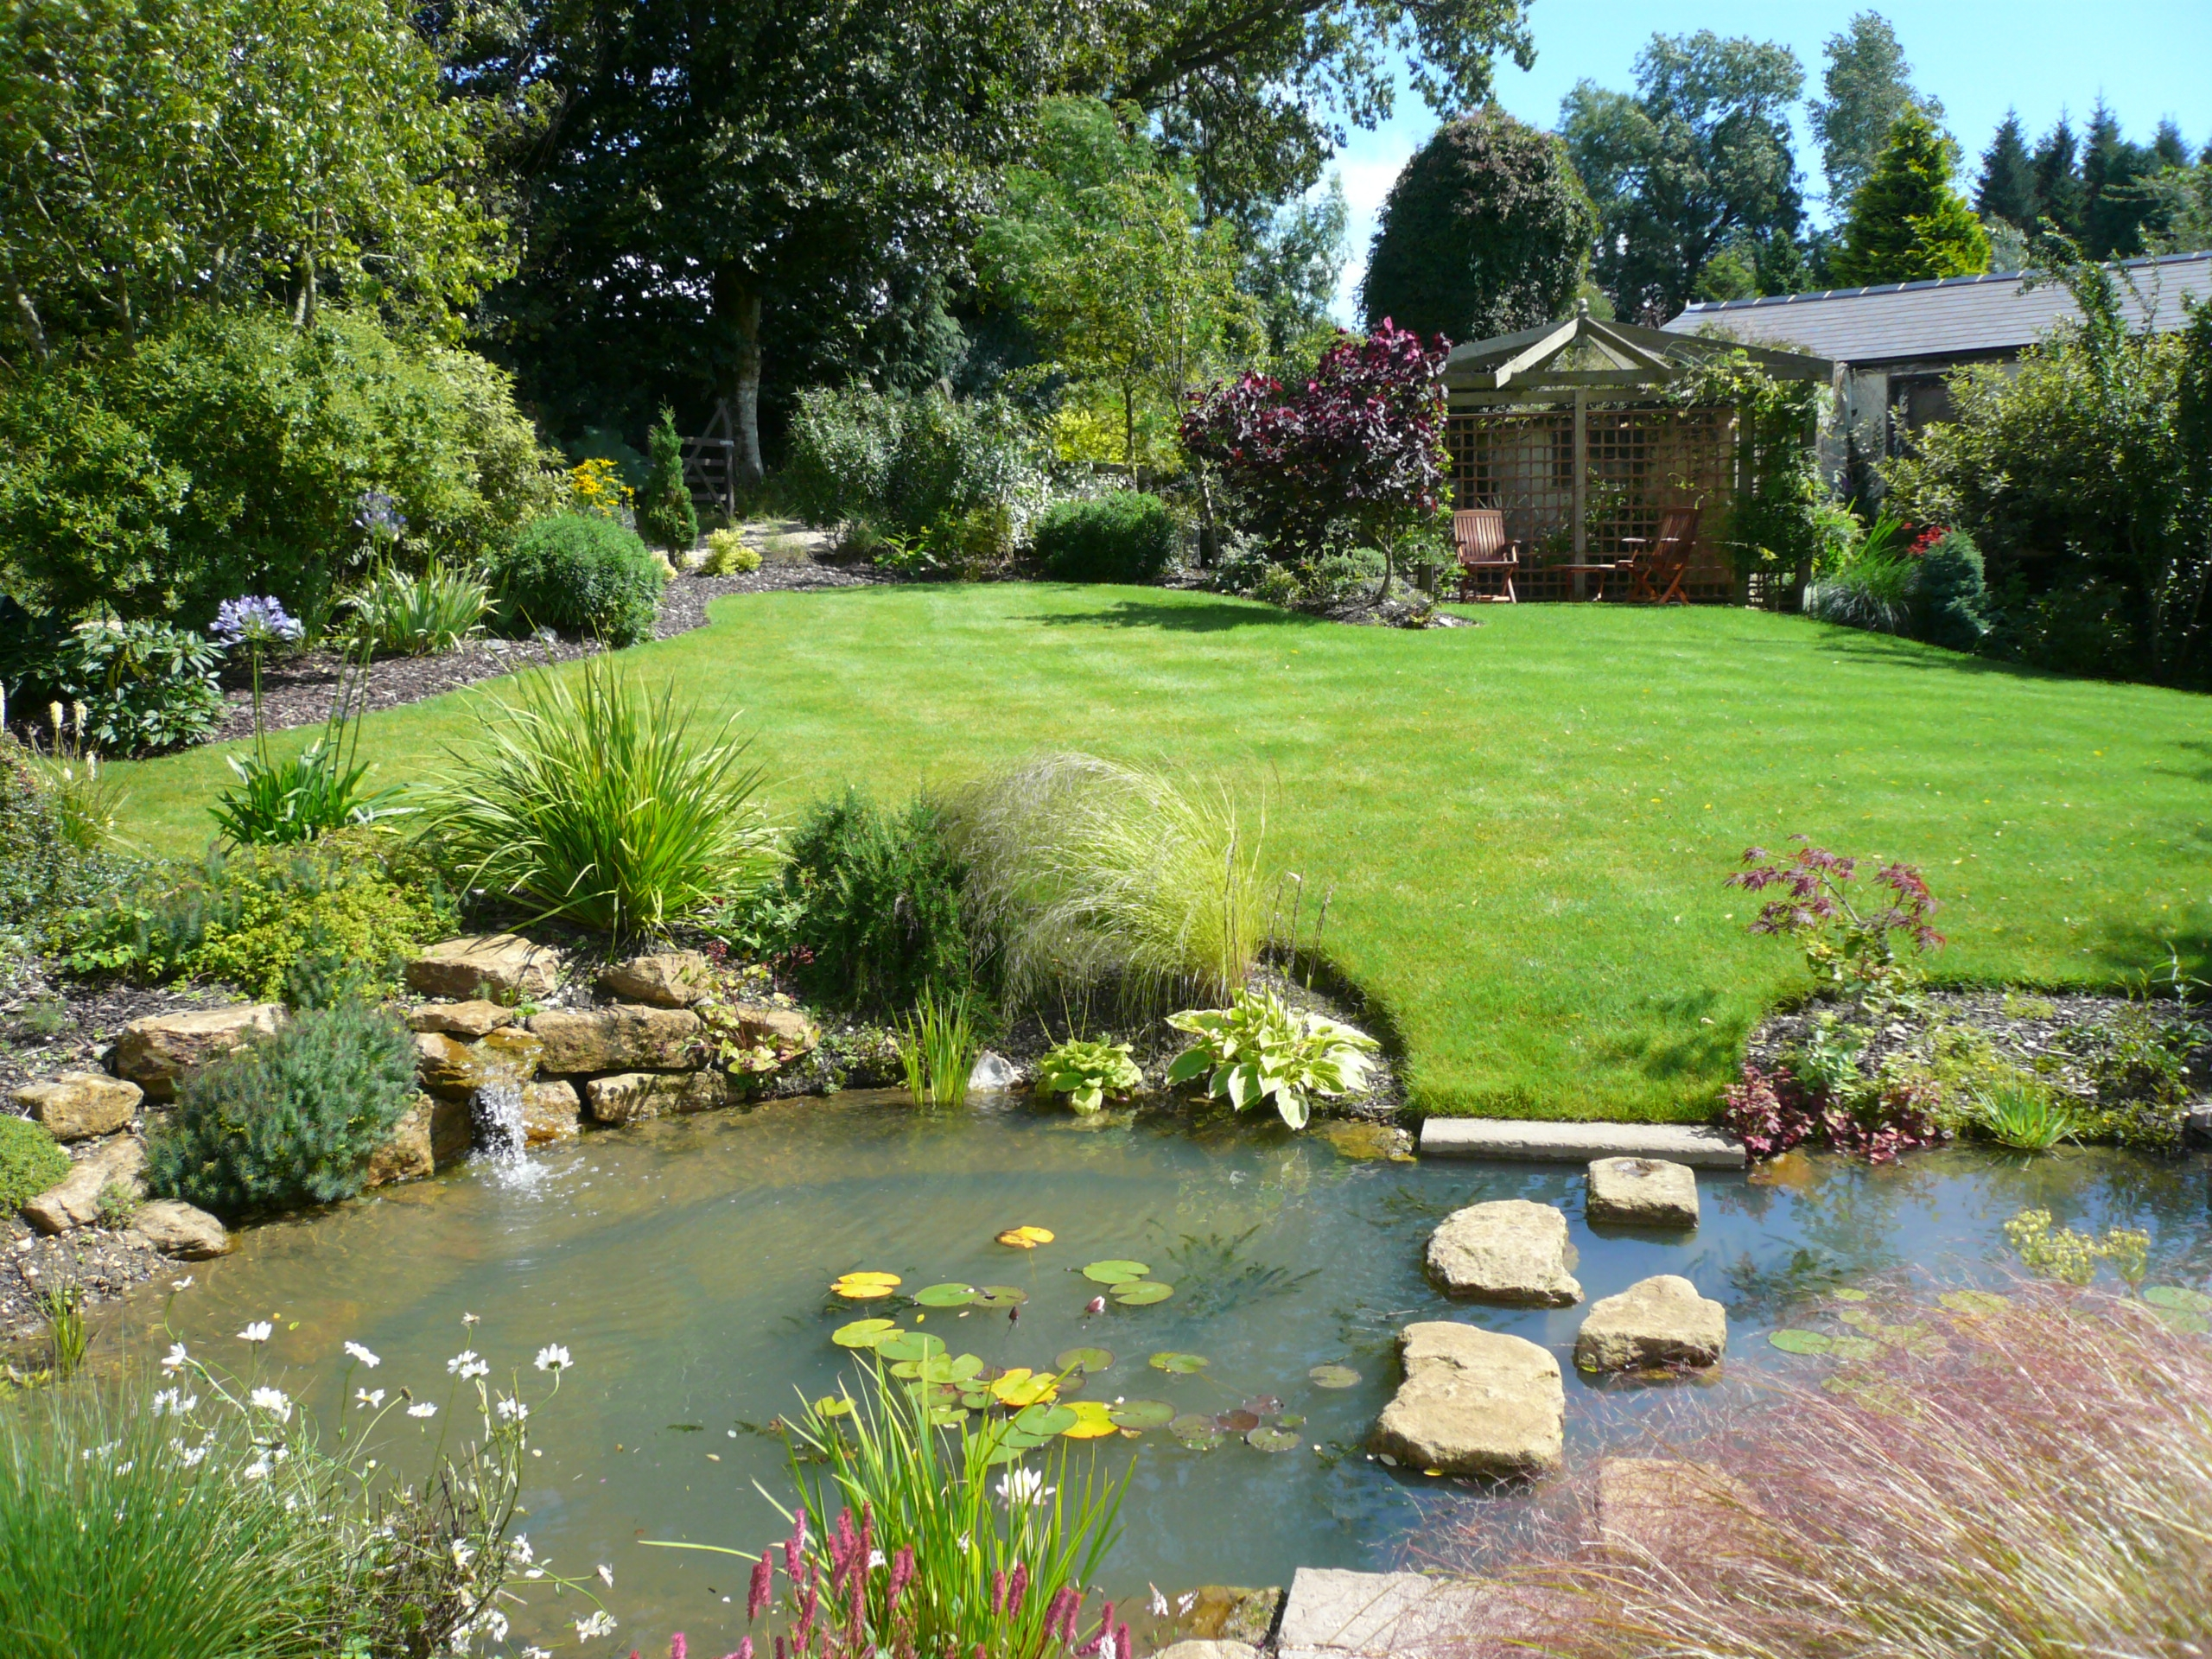 Garden Landscaping Inspiration Design Appealing Garden Landscaping To Enhance Its Beauty . Inspiration Design